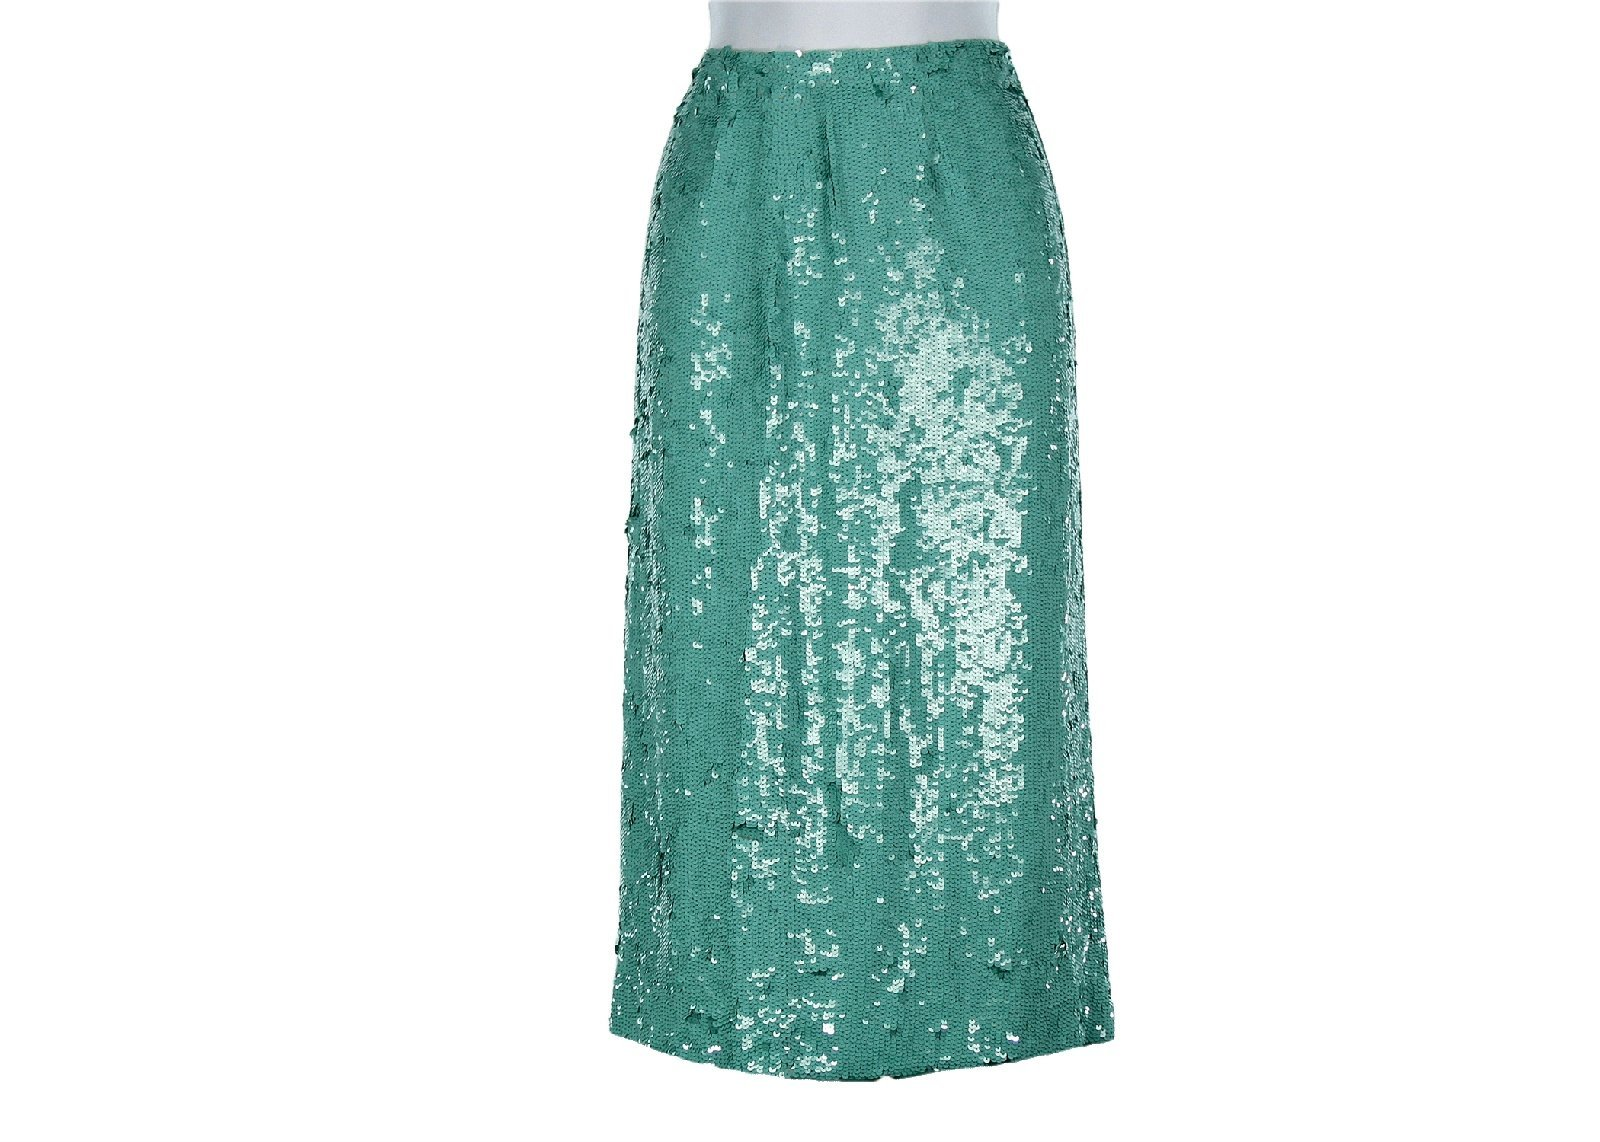 J Crew Collection No. 2 Pencil Skirt In Sequins Sz 2 Style# 52186 Soft Mint